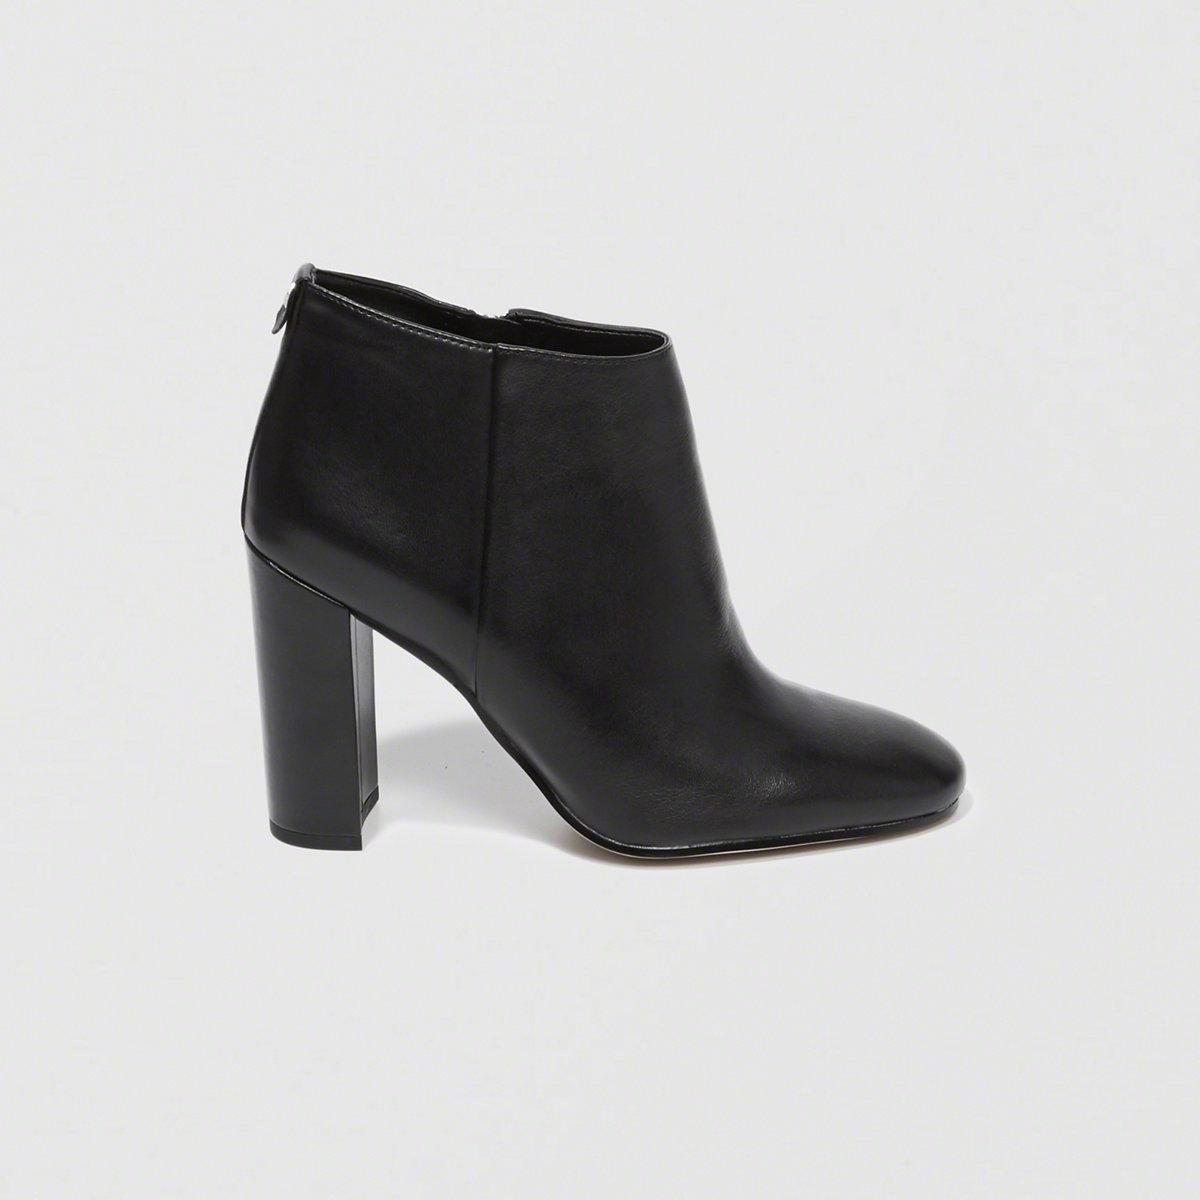 8a1c09bae Lyst - Sam Edelman Cambell Booties in Black